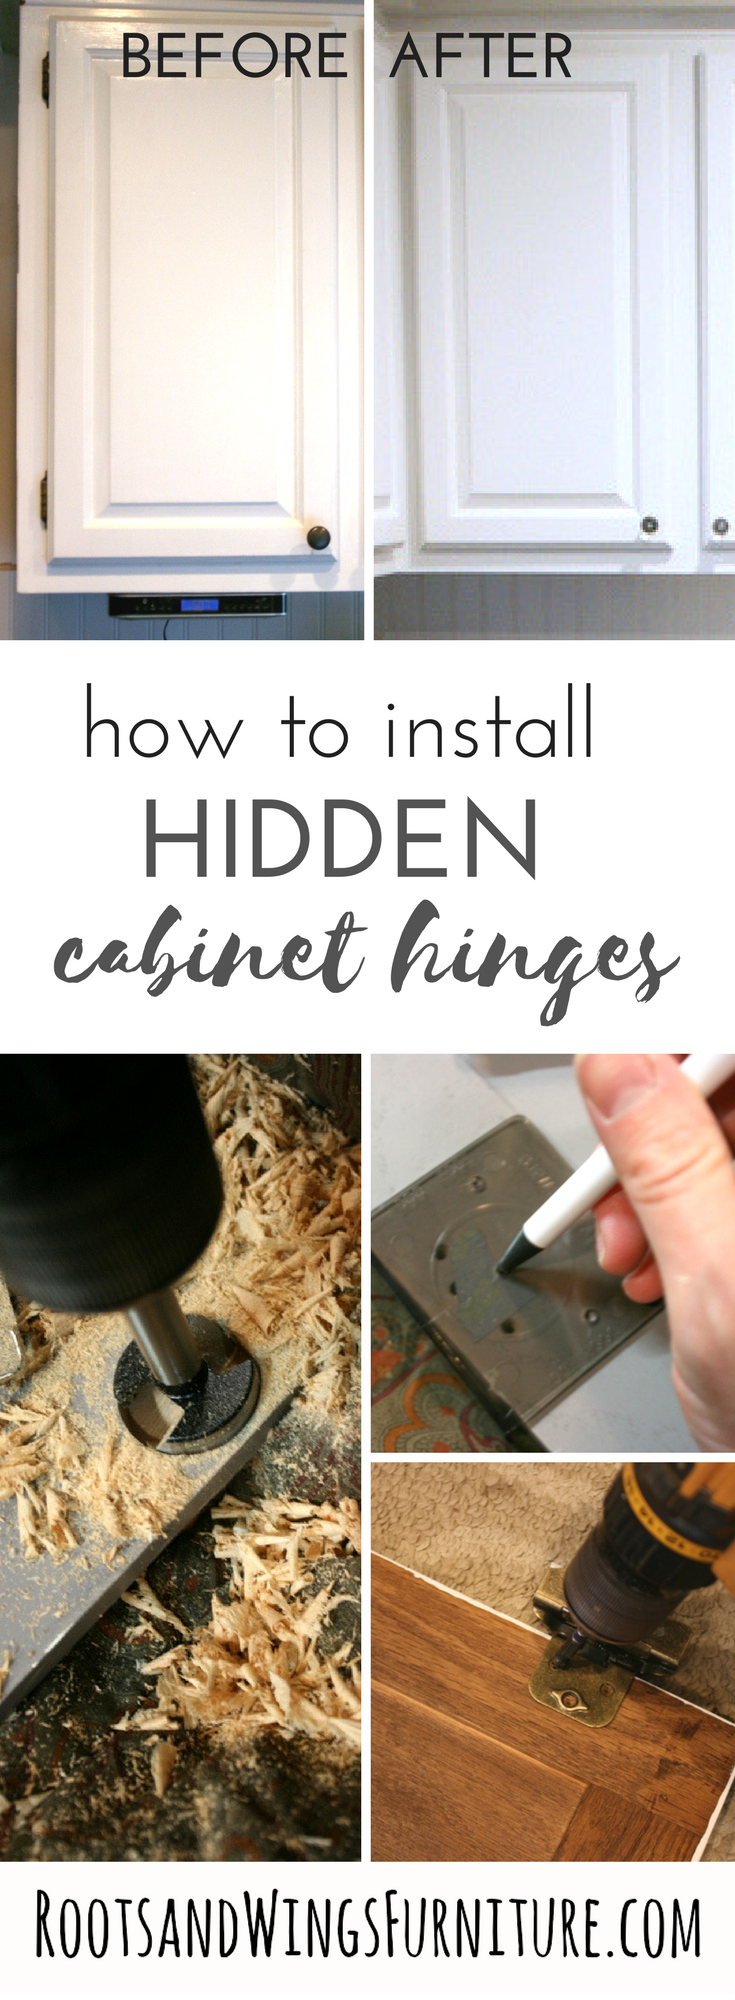 Best Kitchen Gallery: Exposed Hinge To Hidden Hinge Updating Cabi S Molding of How To Install Hidden Hinges On Kitchen Cabinets on rachelxblog.com